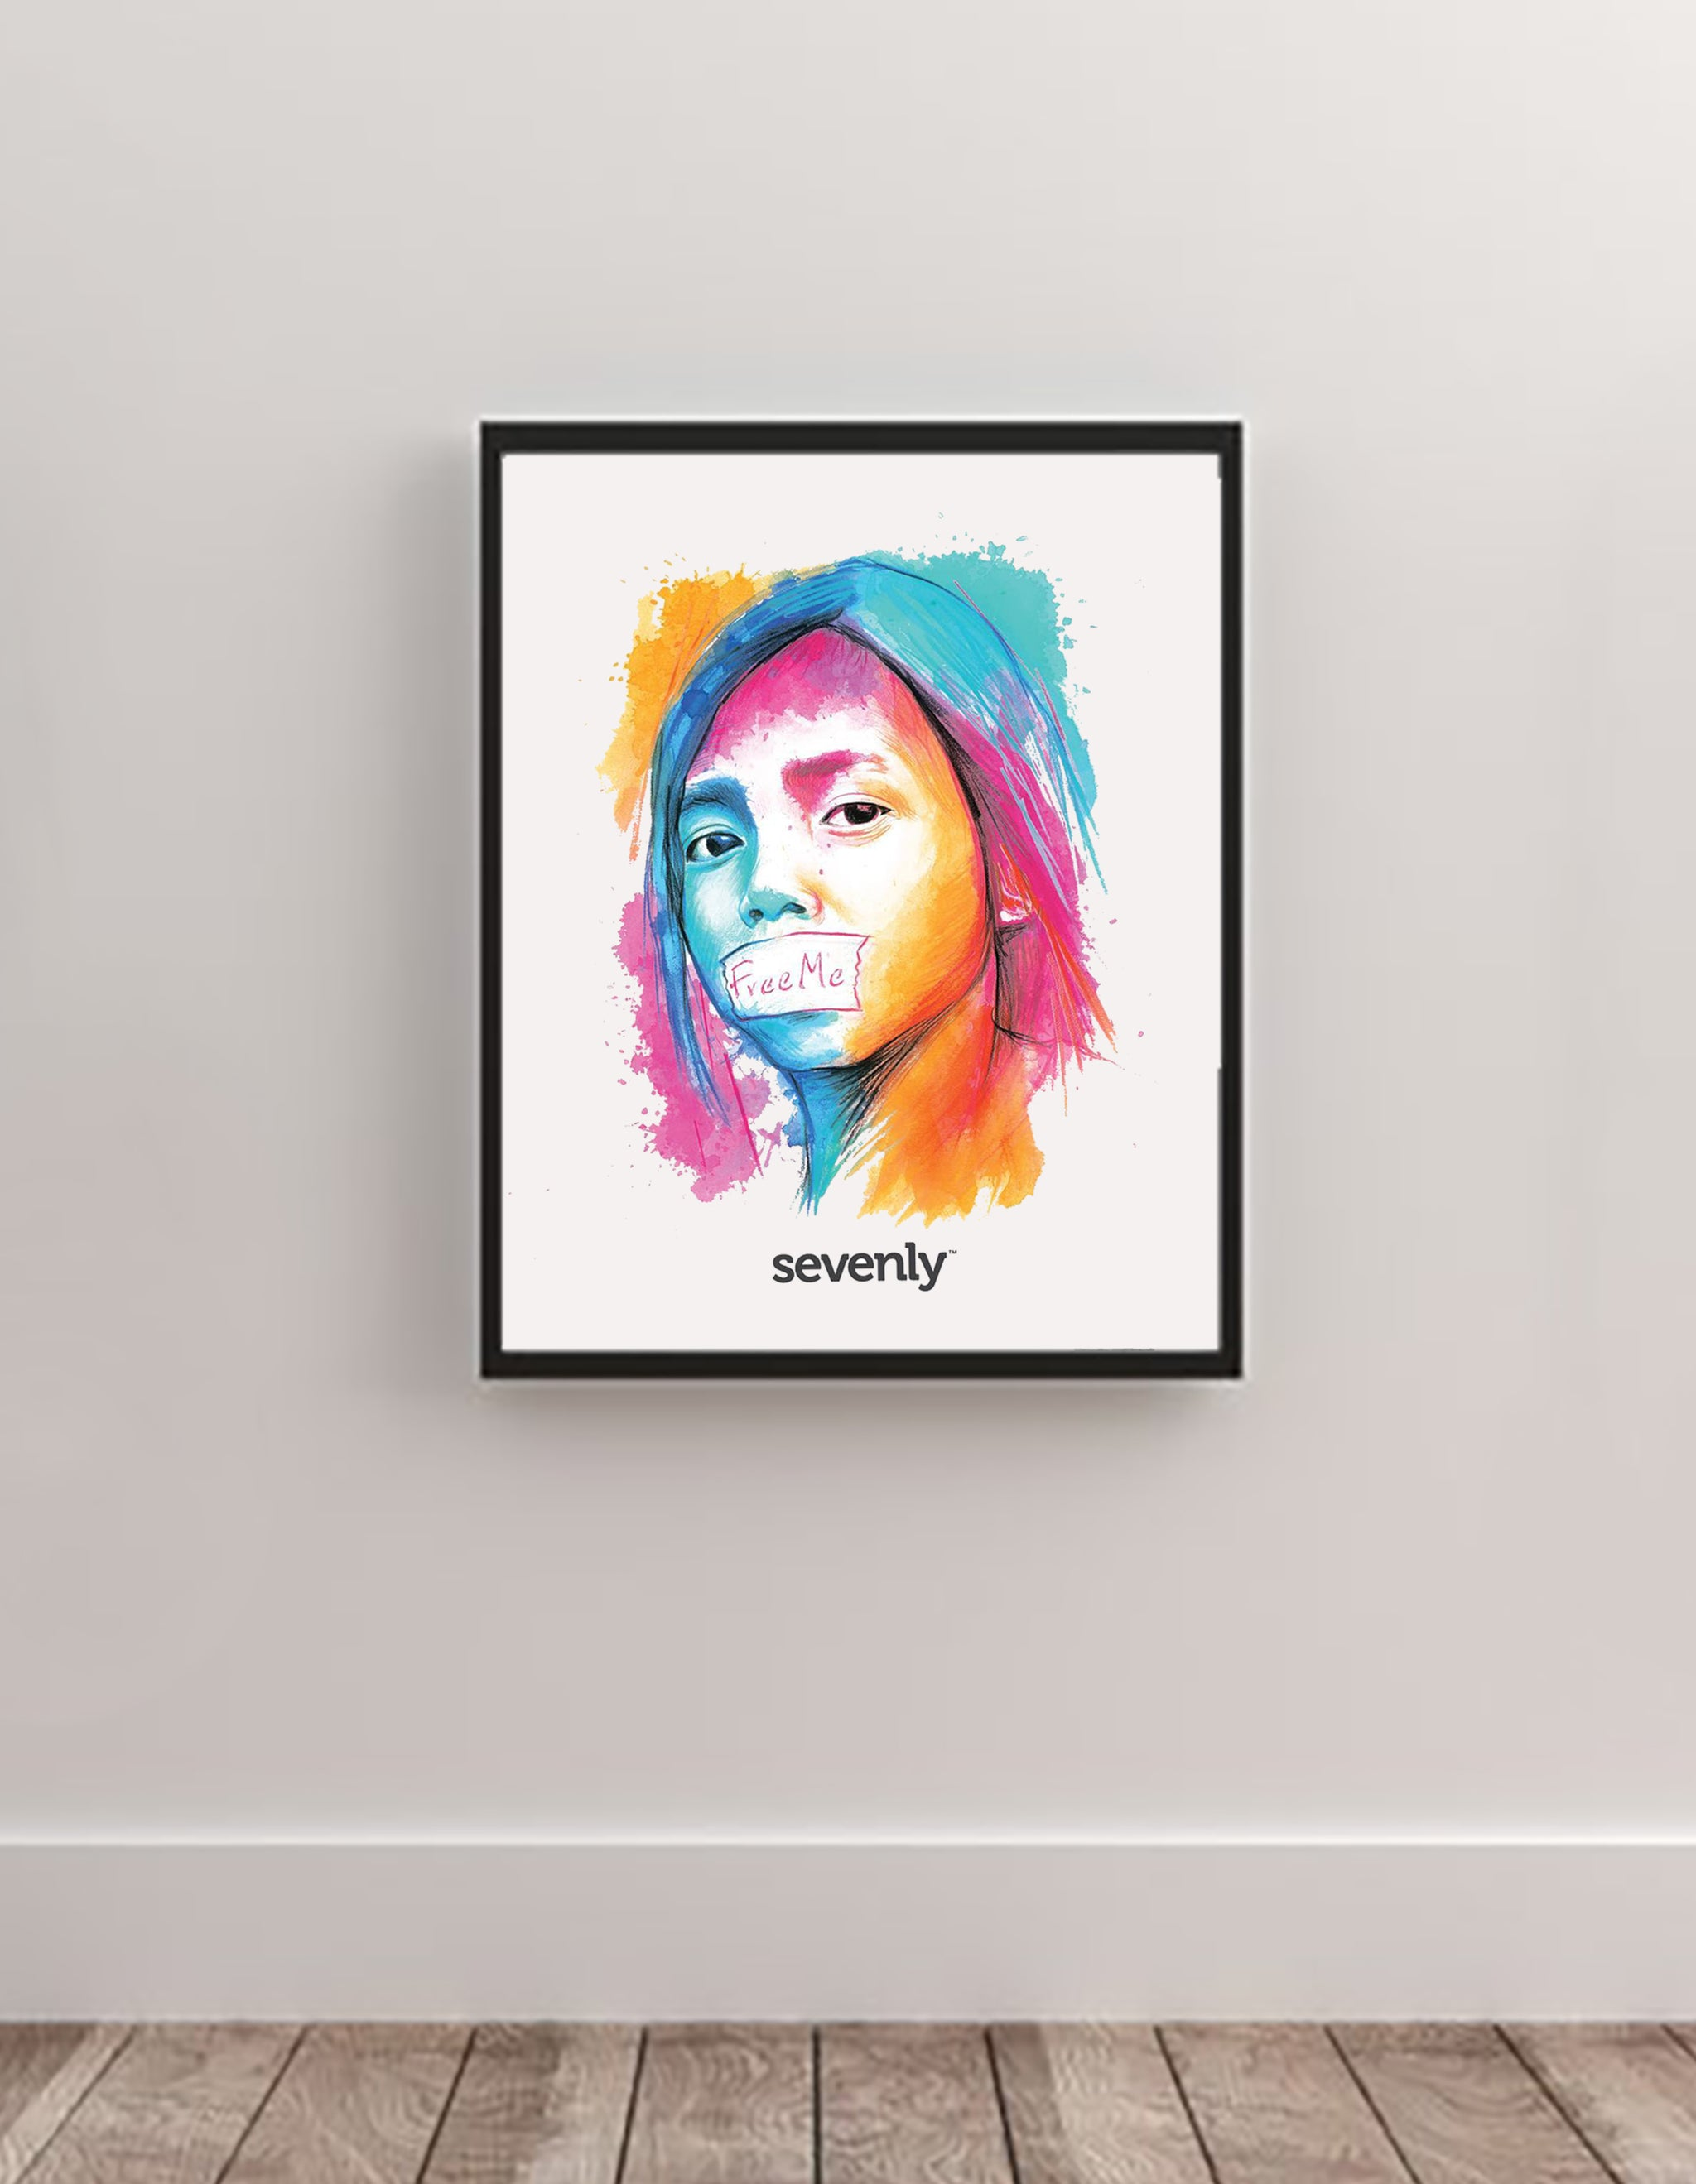 Sevenly - Wall Art - Free Me